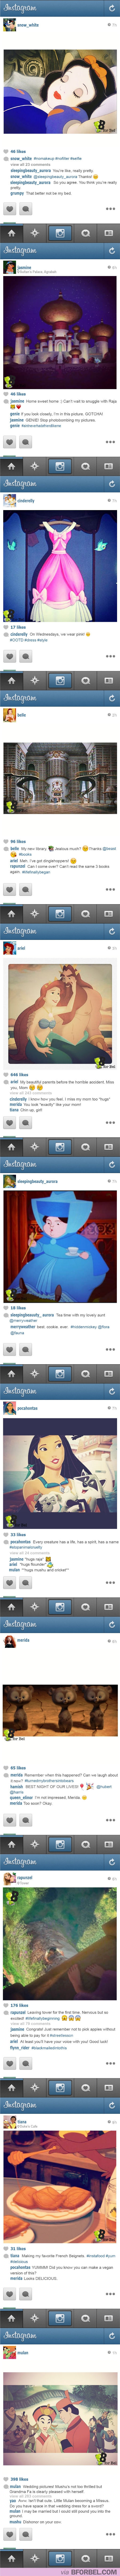 If Disney Princesses Had Instagram